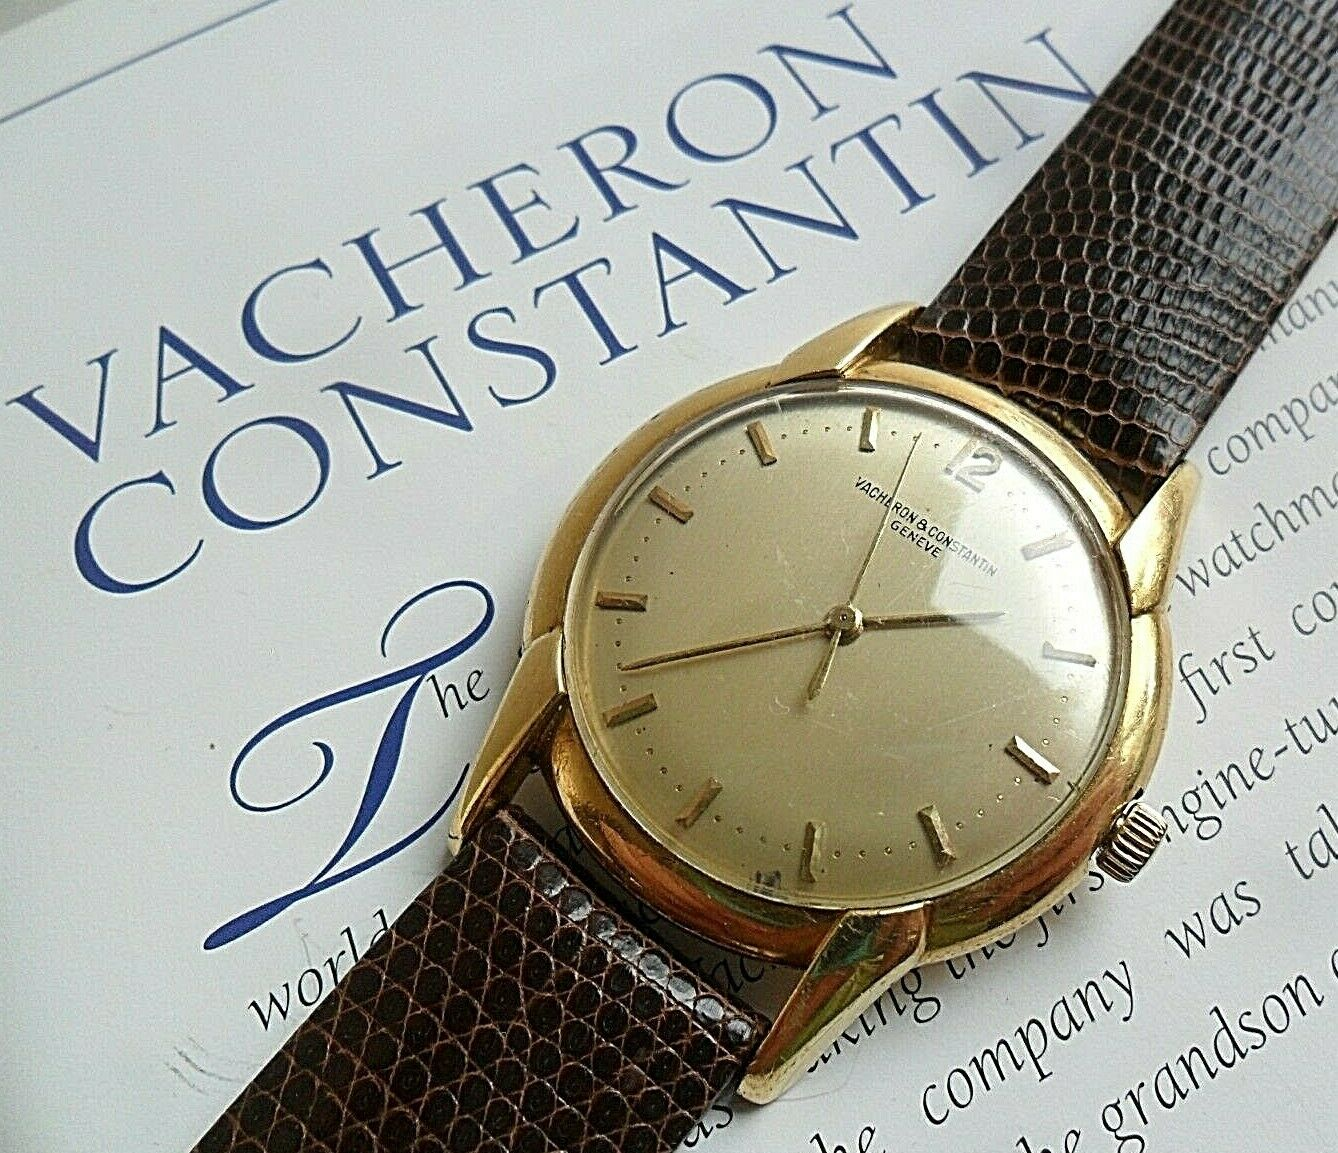 Classic Vintage 18k Gold 1970's Men's Vacheron Constantin 17J Swiss Watch 4 REP. - watch picture 1